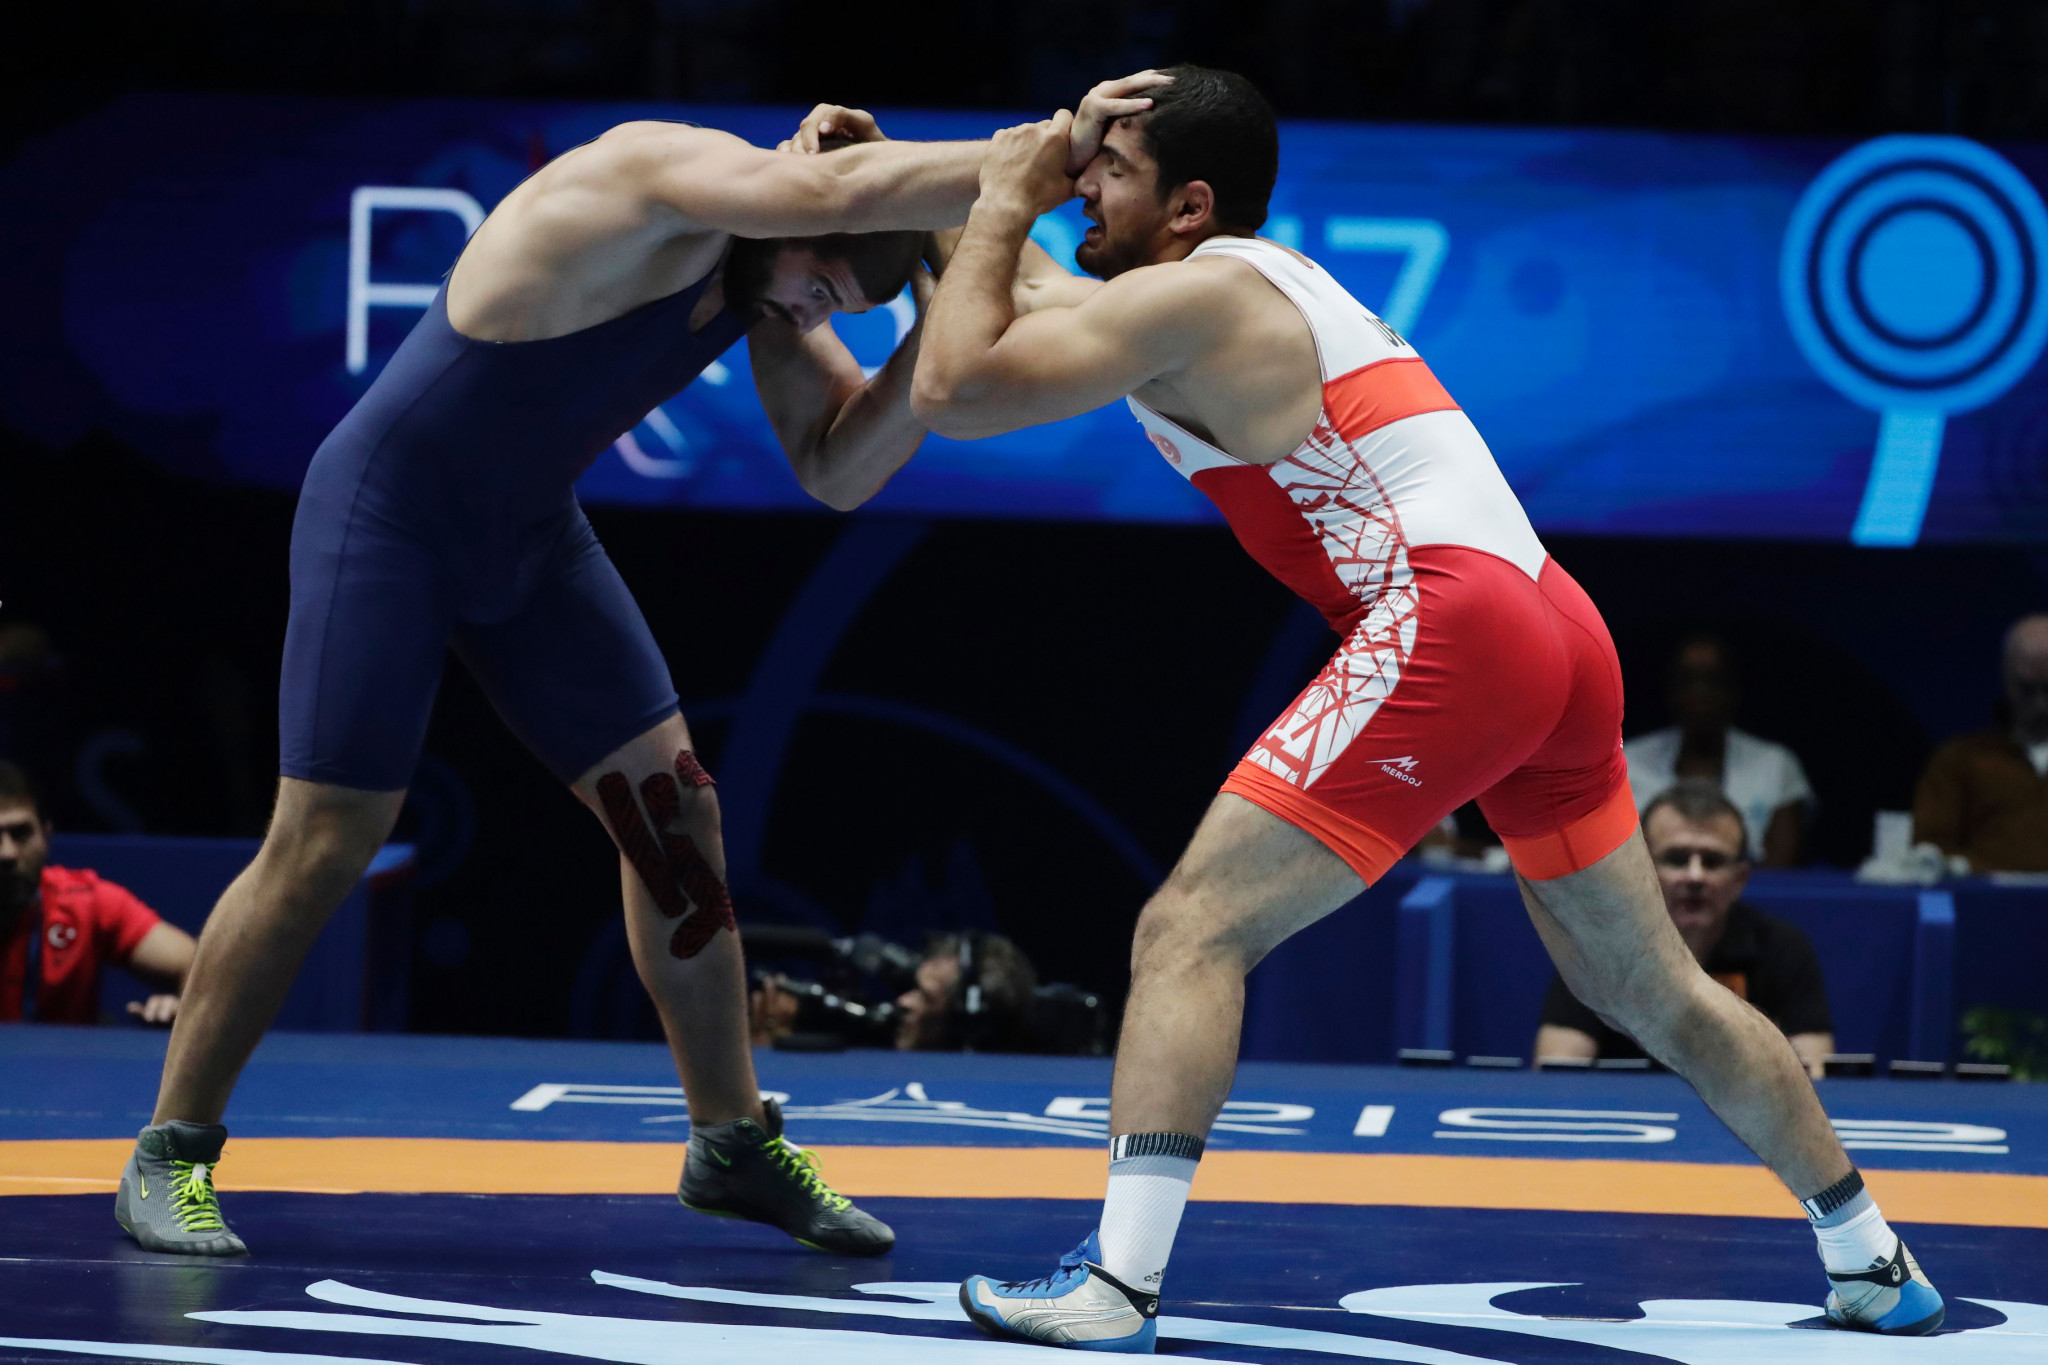 The host of the 2019 Senior Wrestling World Championships has been announced as Astana, Kazakhstan ©Getty Images